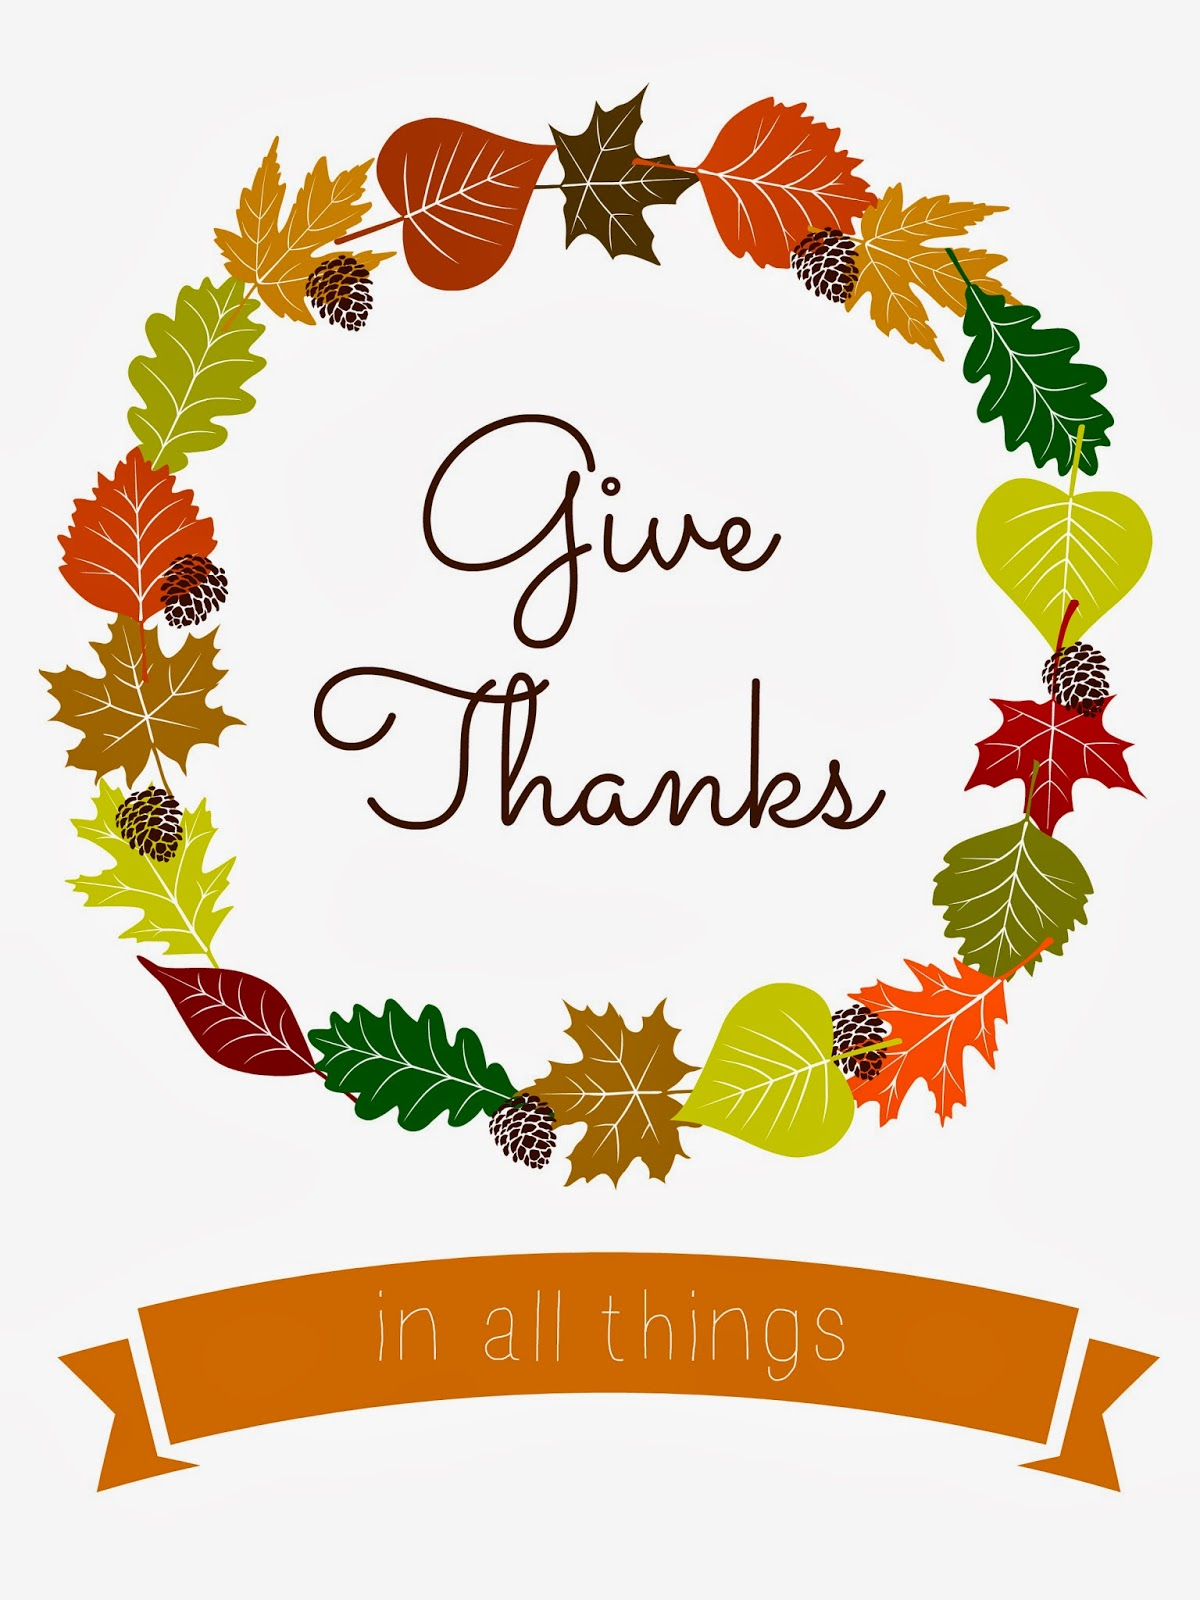 Free download clipart thanksgiving image black and white download Free Free Happy Thanksgiving Images, Download Free Clip Art, Free ... image black and white download